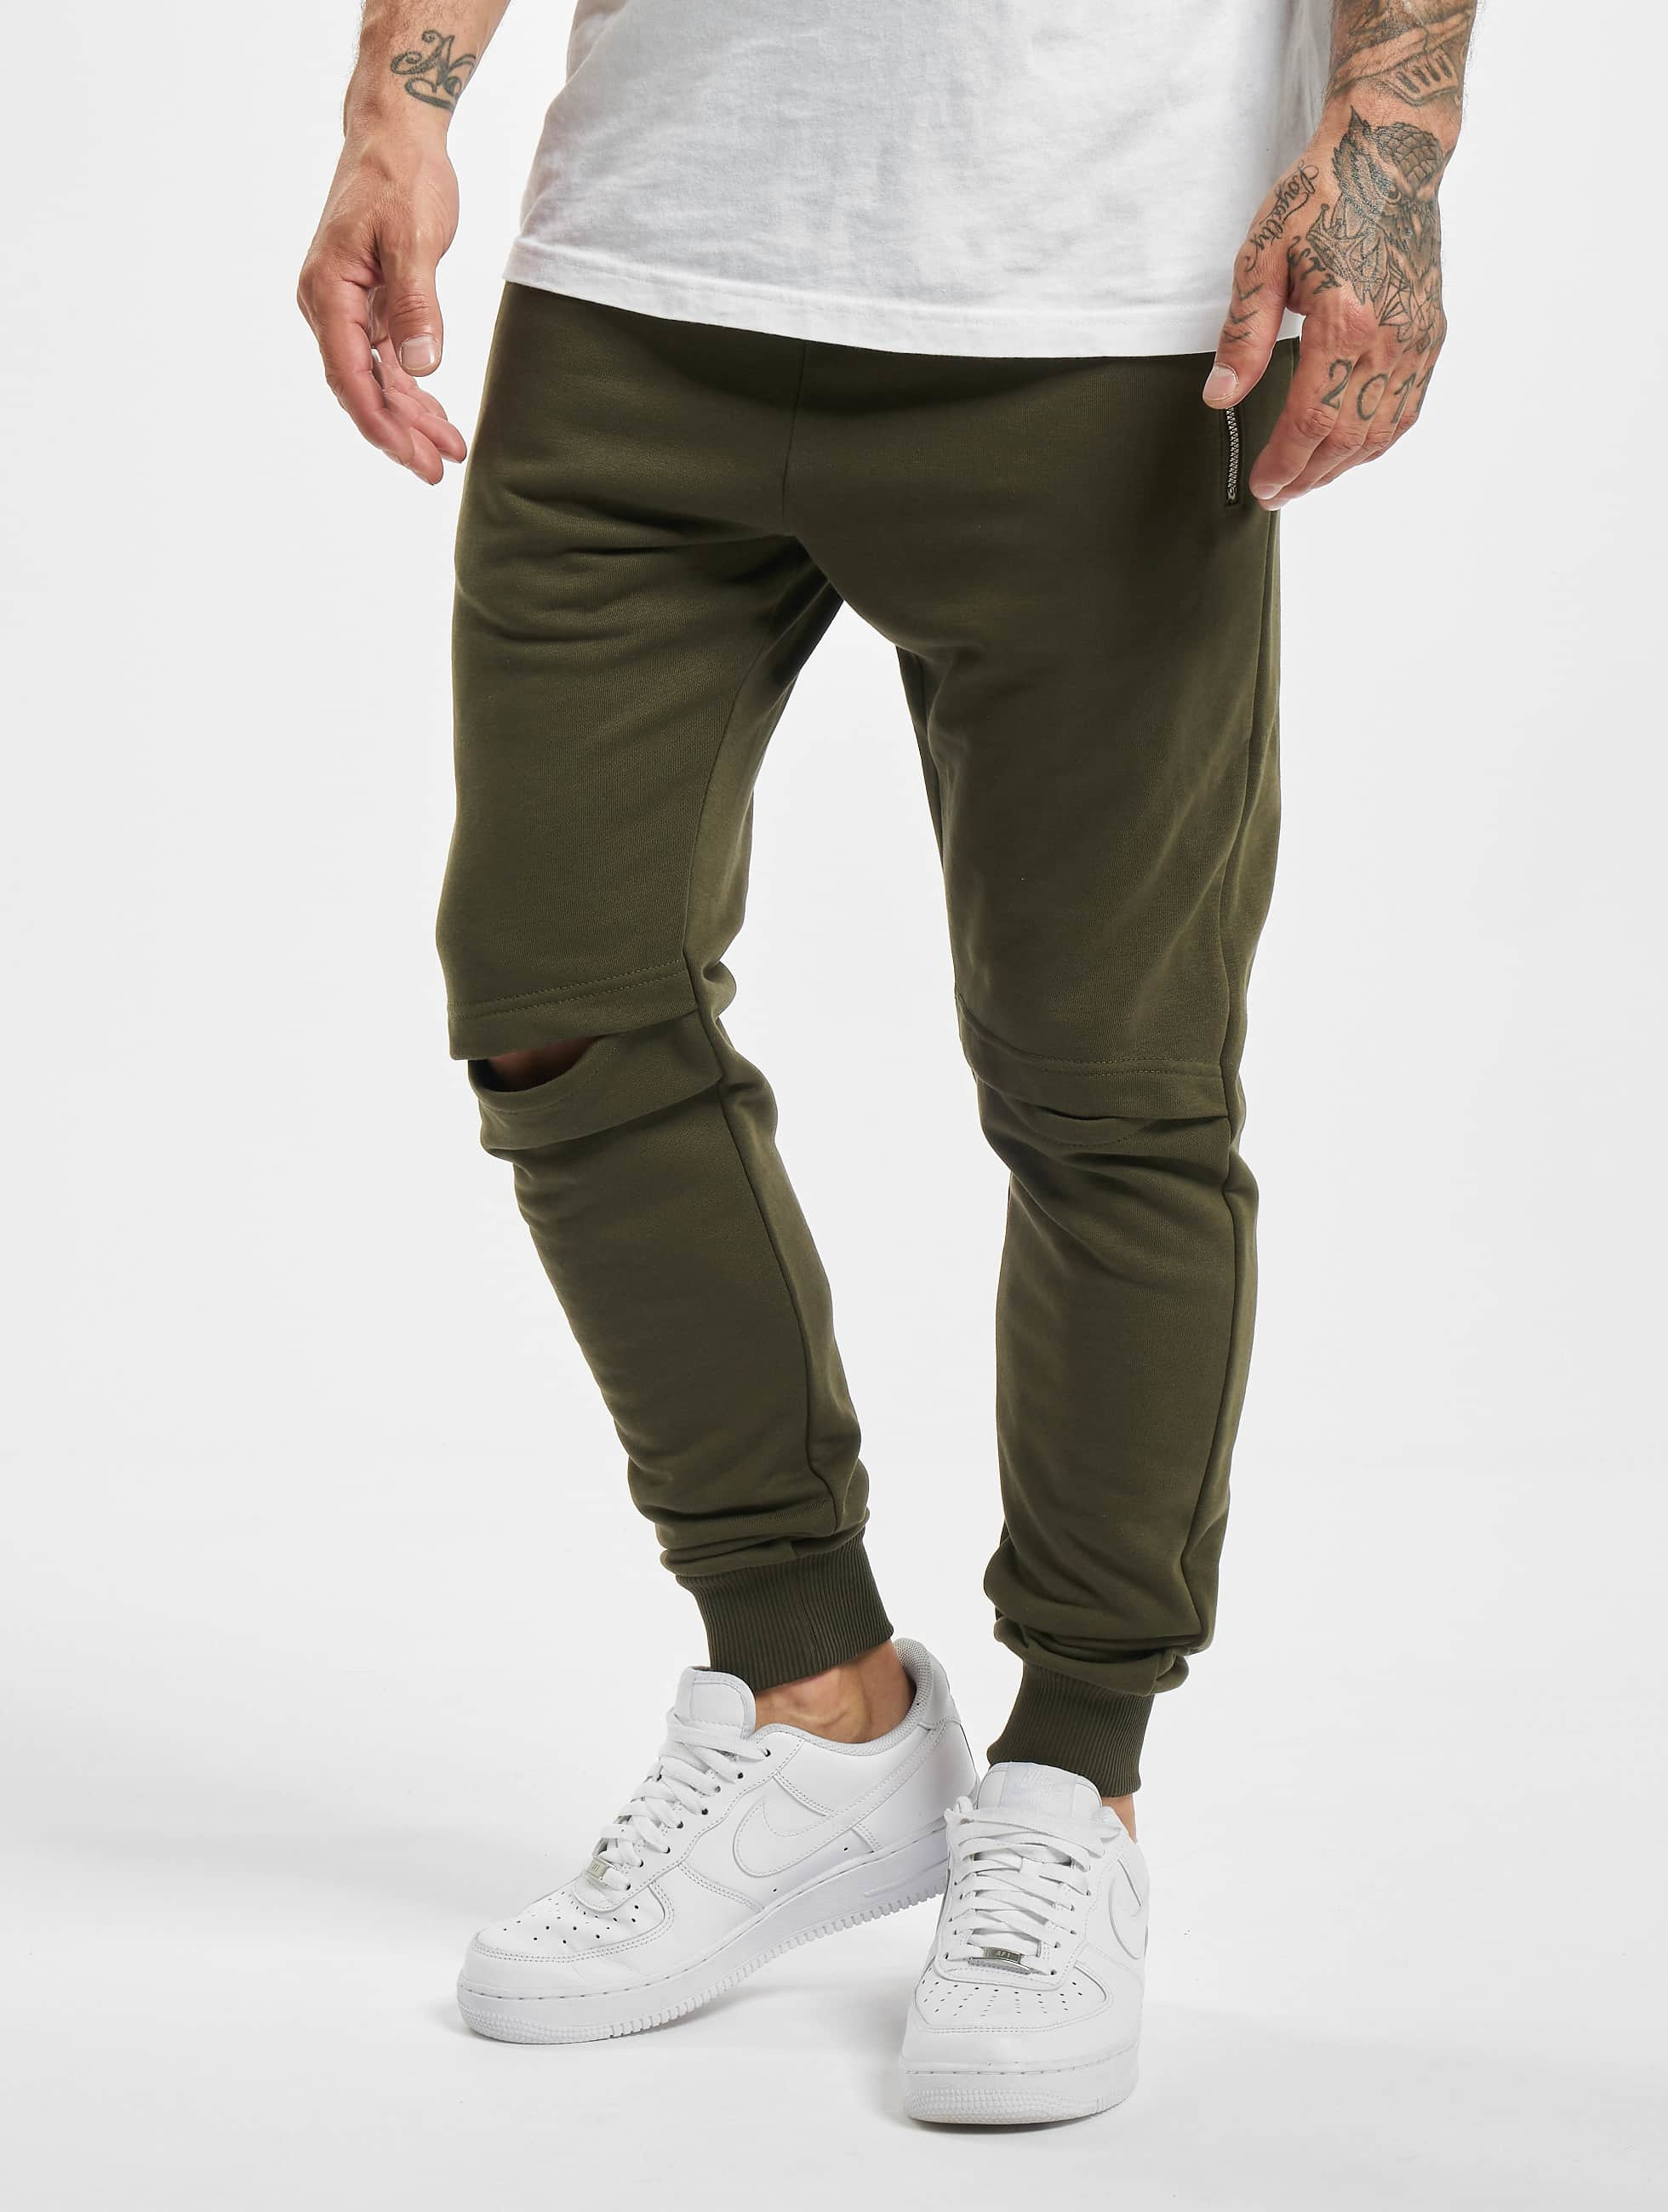 DEF / Sweat Pant Rider in olive 2XL